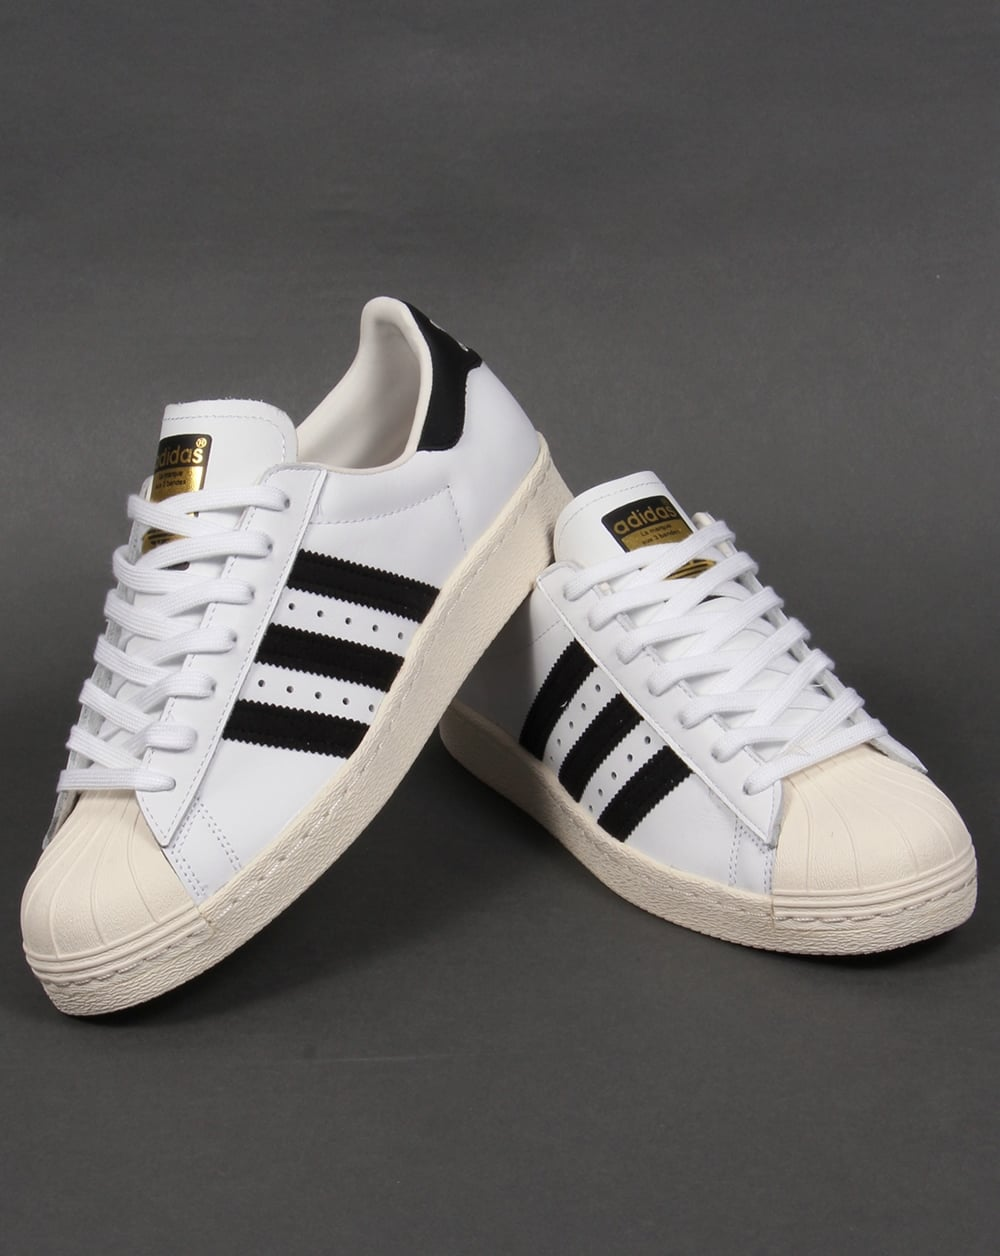 adidas superstar 80s trainers white black originals shell toe shoe. Black Bedroom Furniture Sets. Home Design Ideas